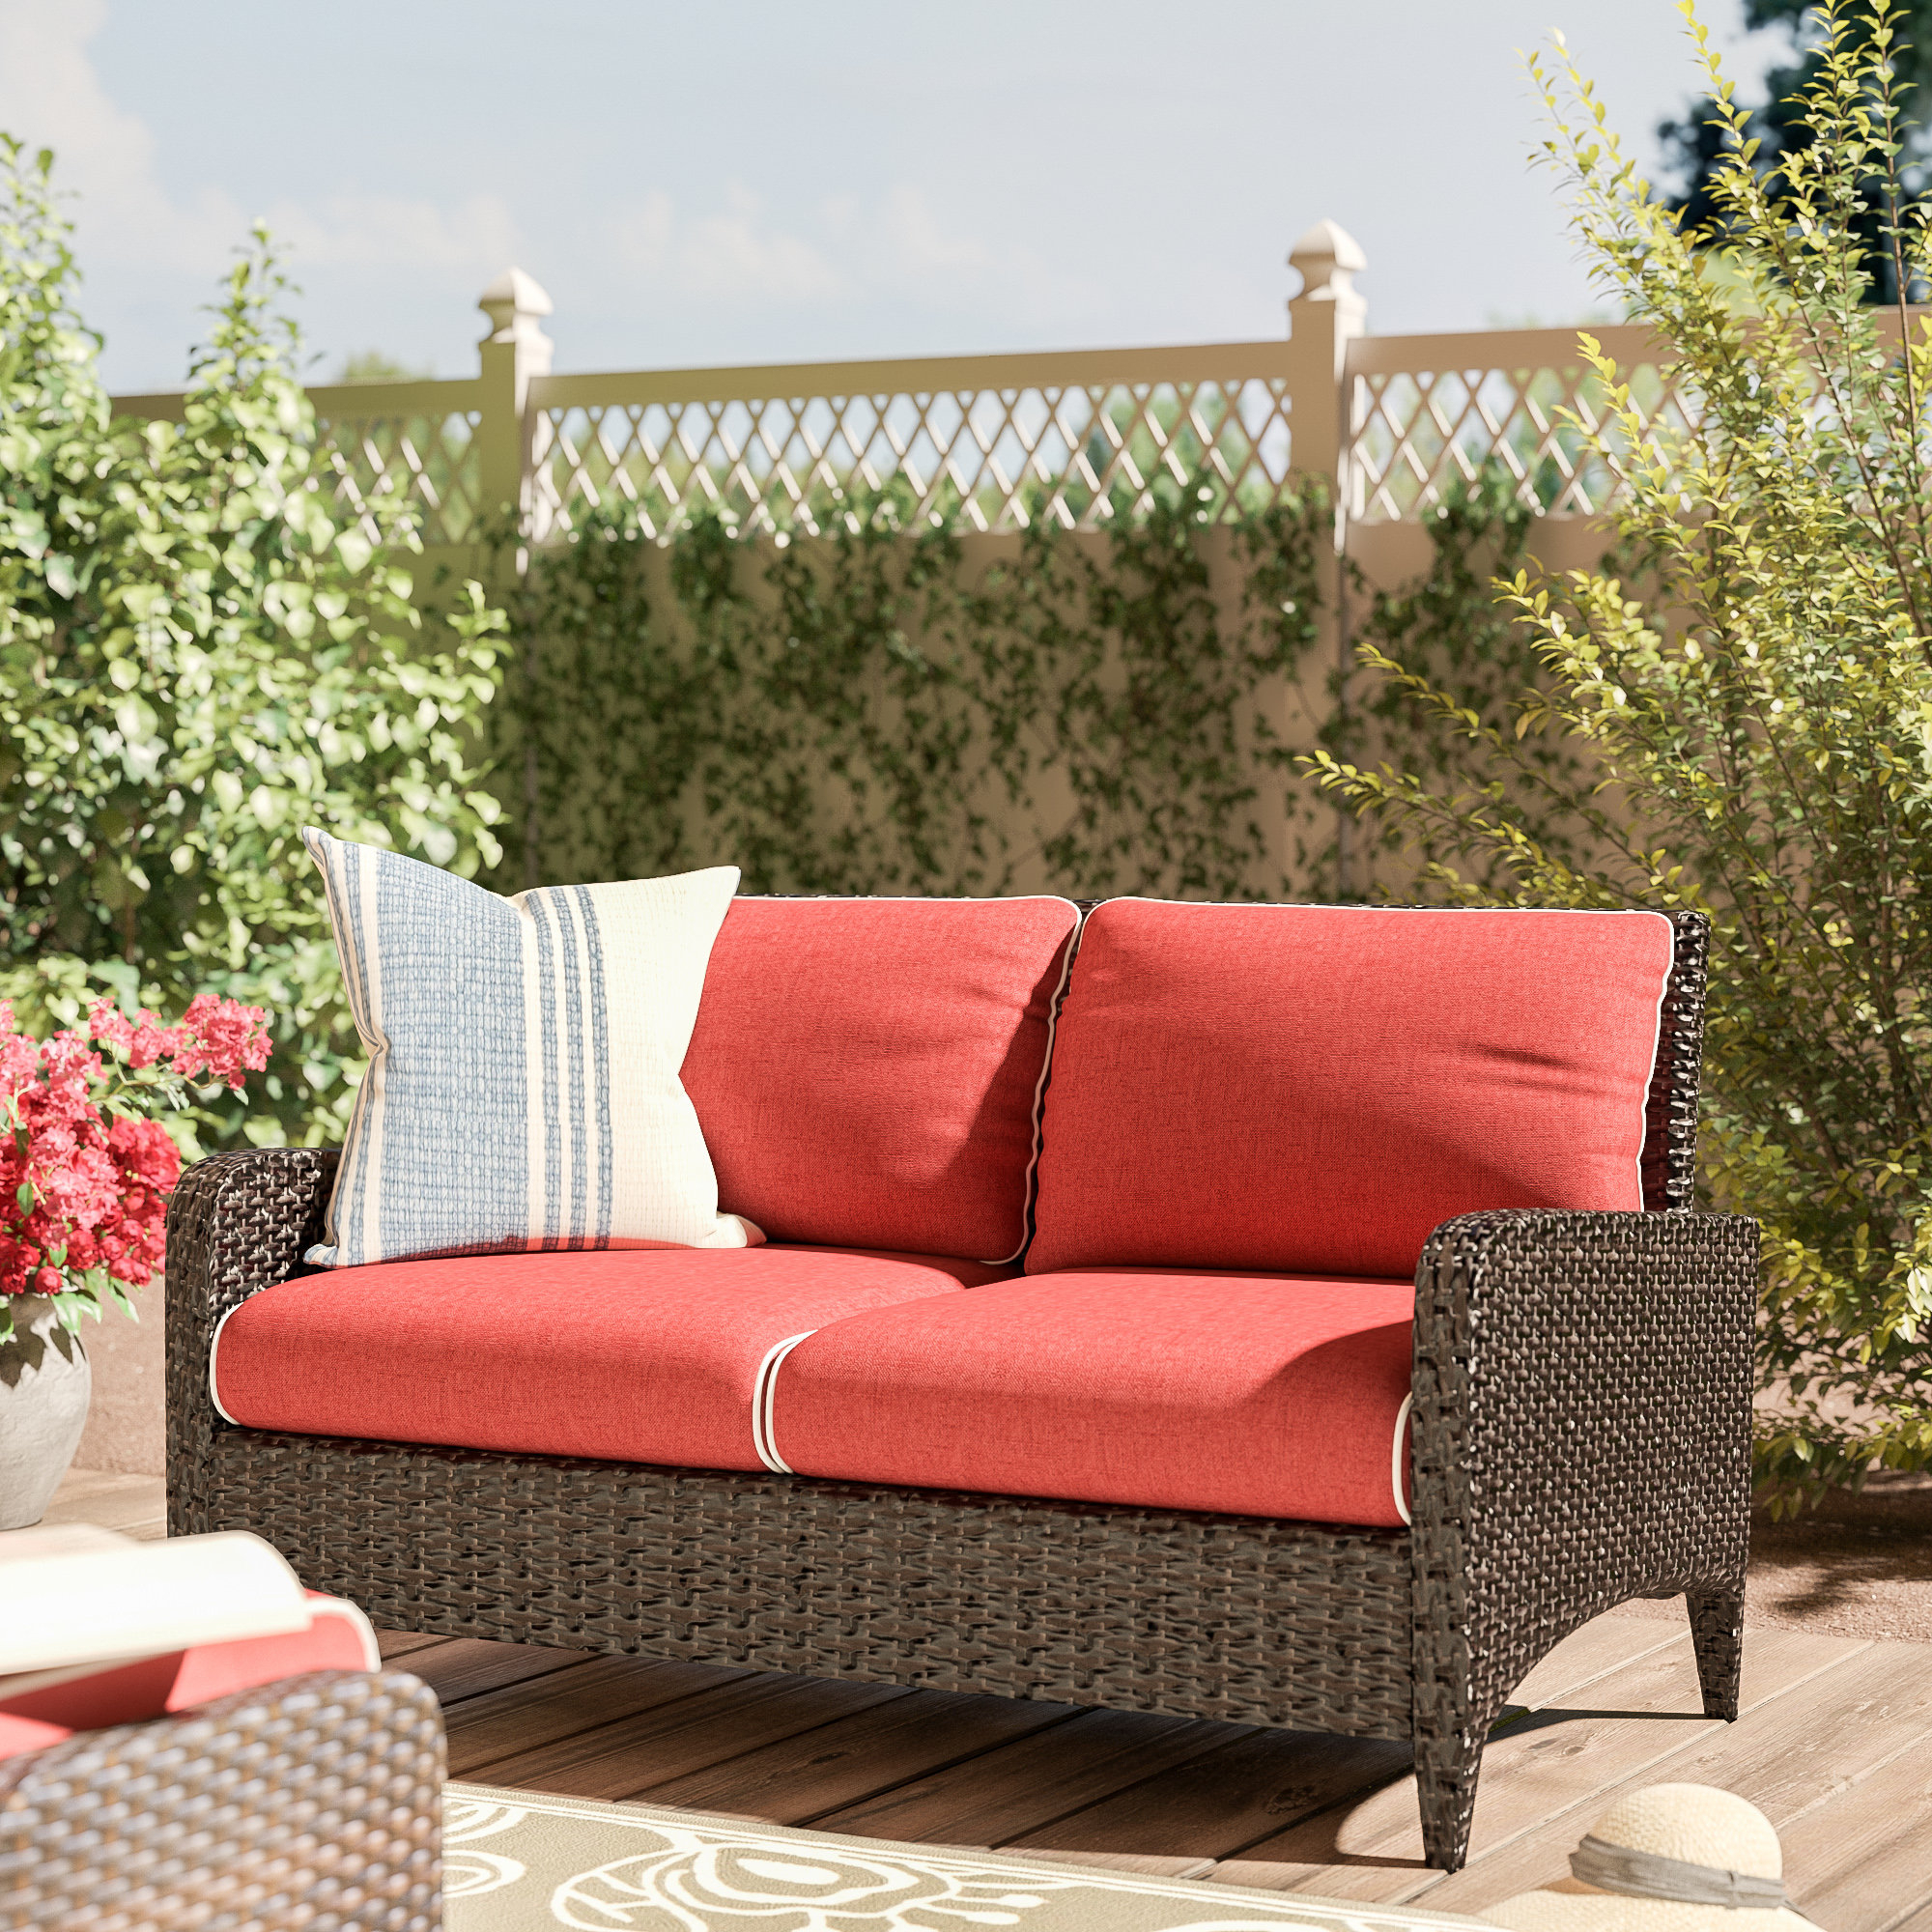 Most Popular Laverton Loveseats With Cushions With Regard To Patio Loveseat With Ottoman (View 14 of 20)